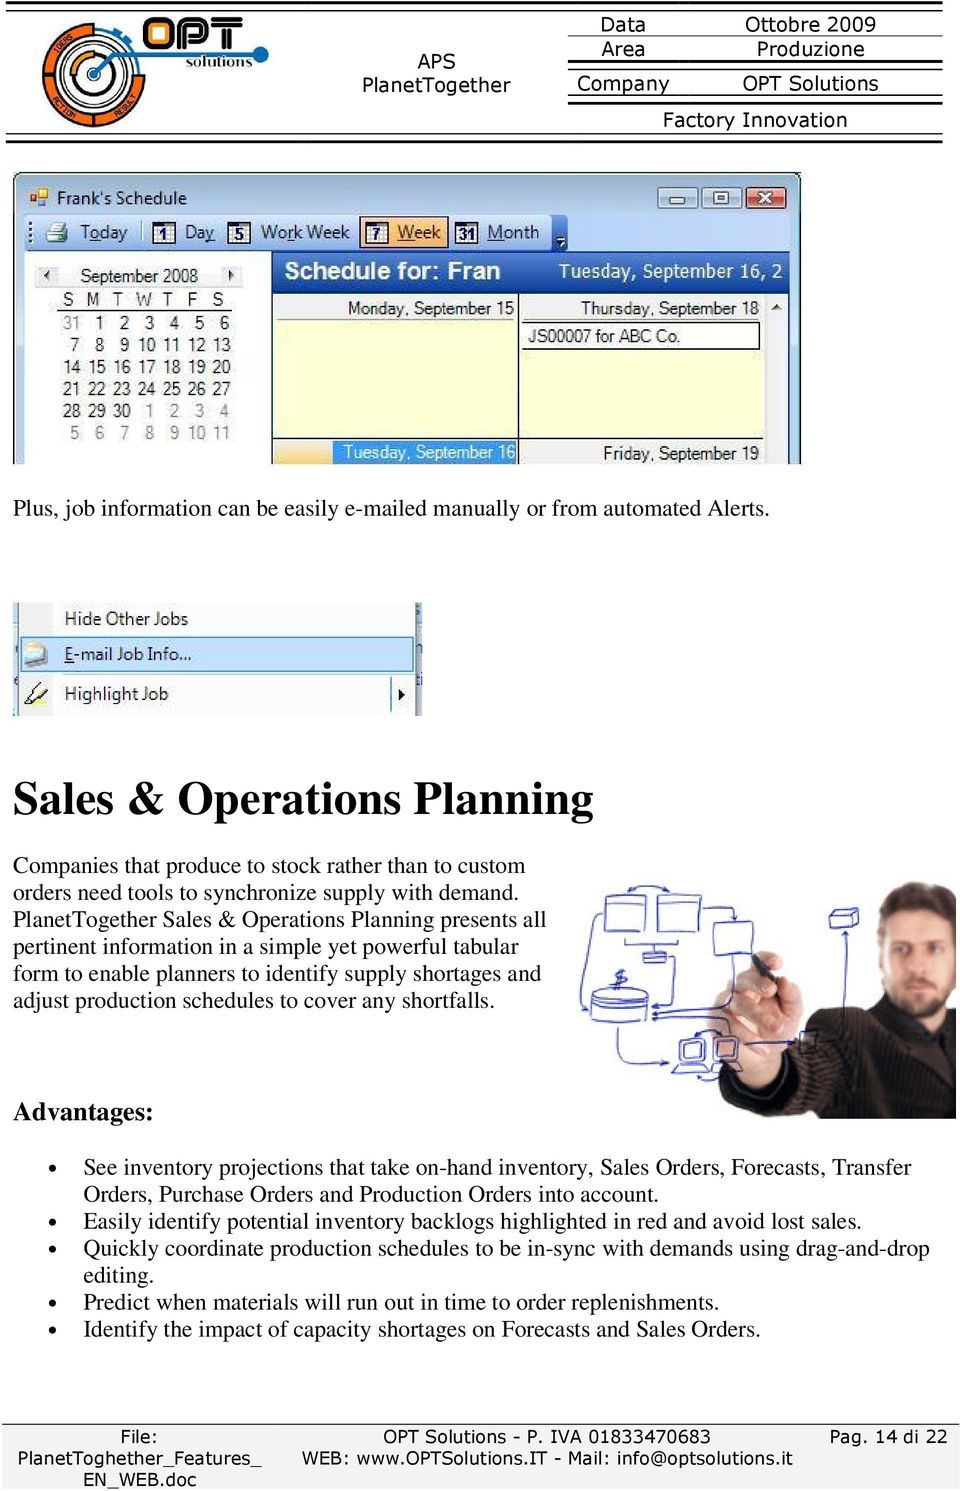 Sales & Operations Planning presents all pertinent information in a simple yet powerful tabular form to enable planners to identify supply shortages and adjust production schedules to cover any